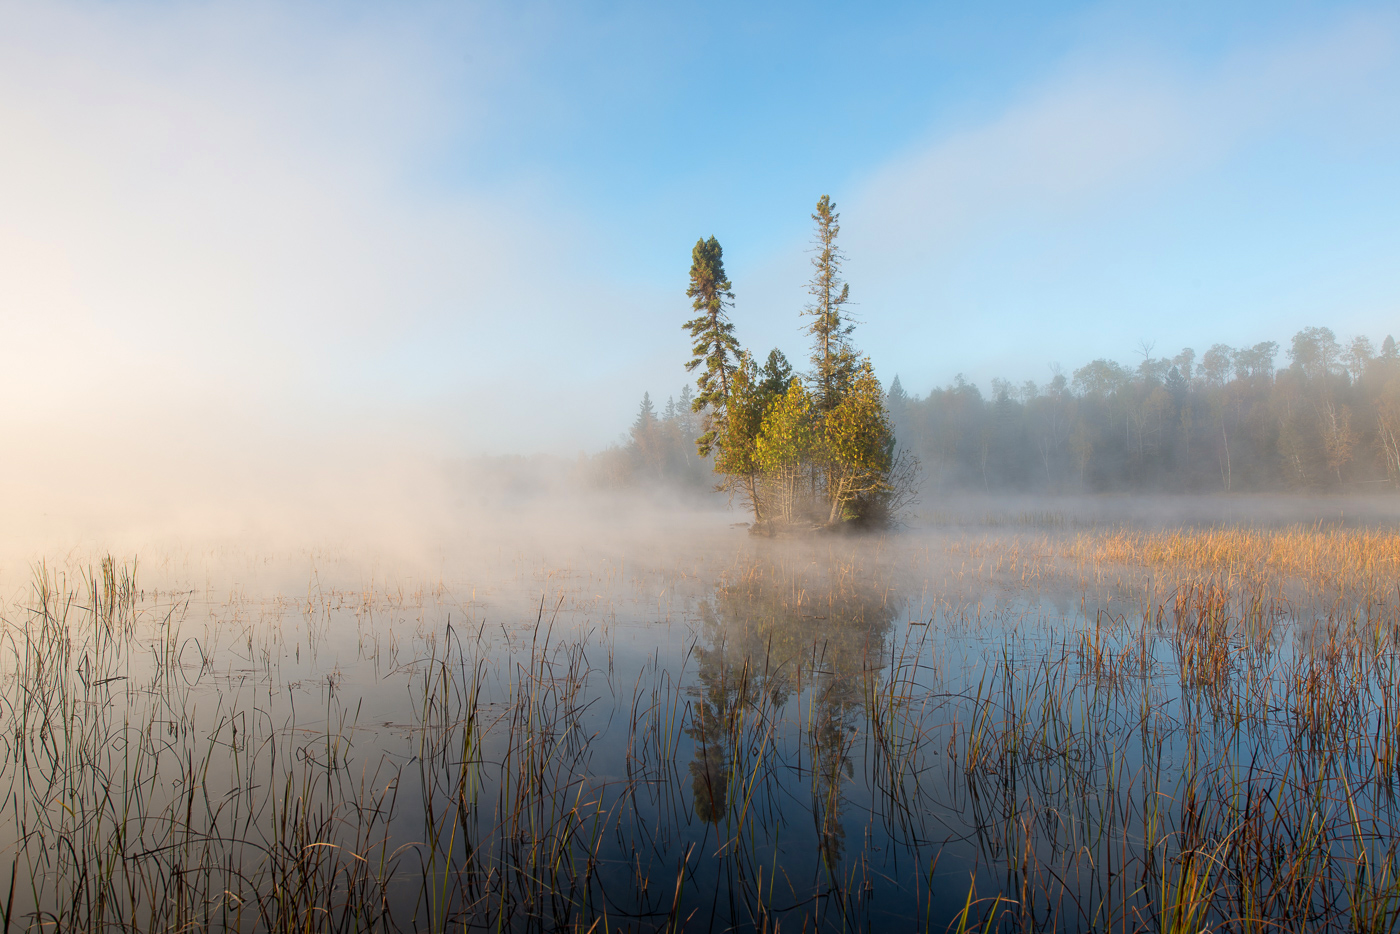 Sunrise, Superior National Forest, boundary waters, boundary waters canoe area, calm, dawn, fog, island, minnesota, national forest, reflections, water, wilderness, photo